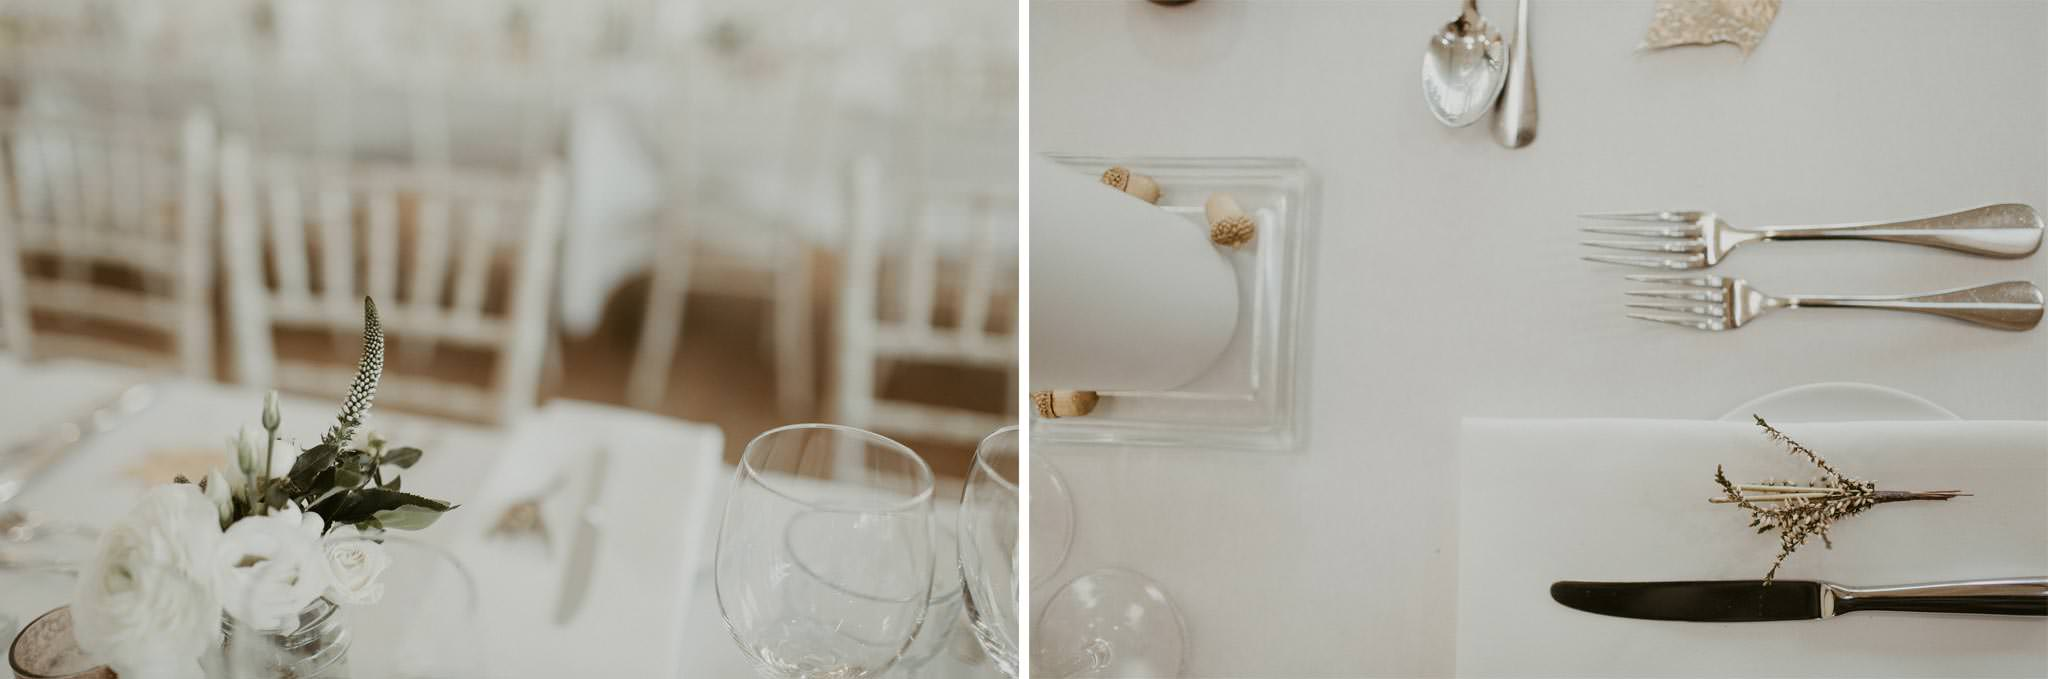 crear-wedding-photographer-073